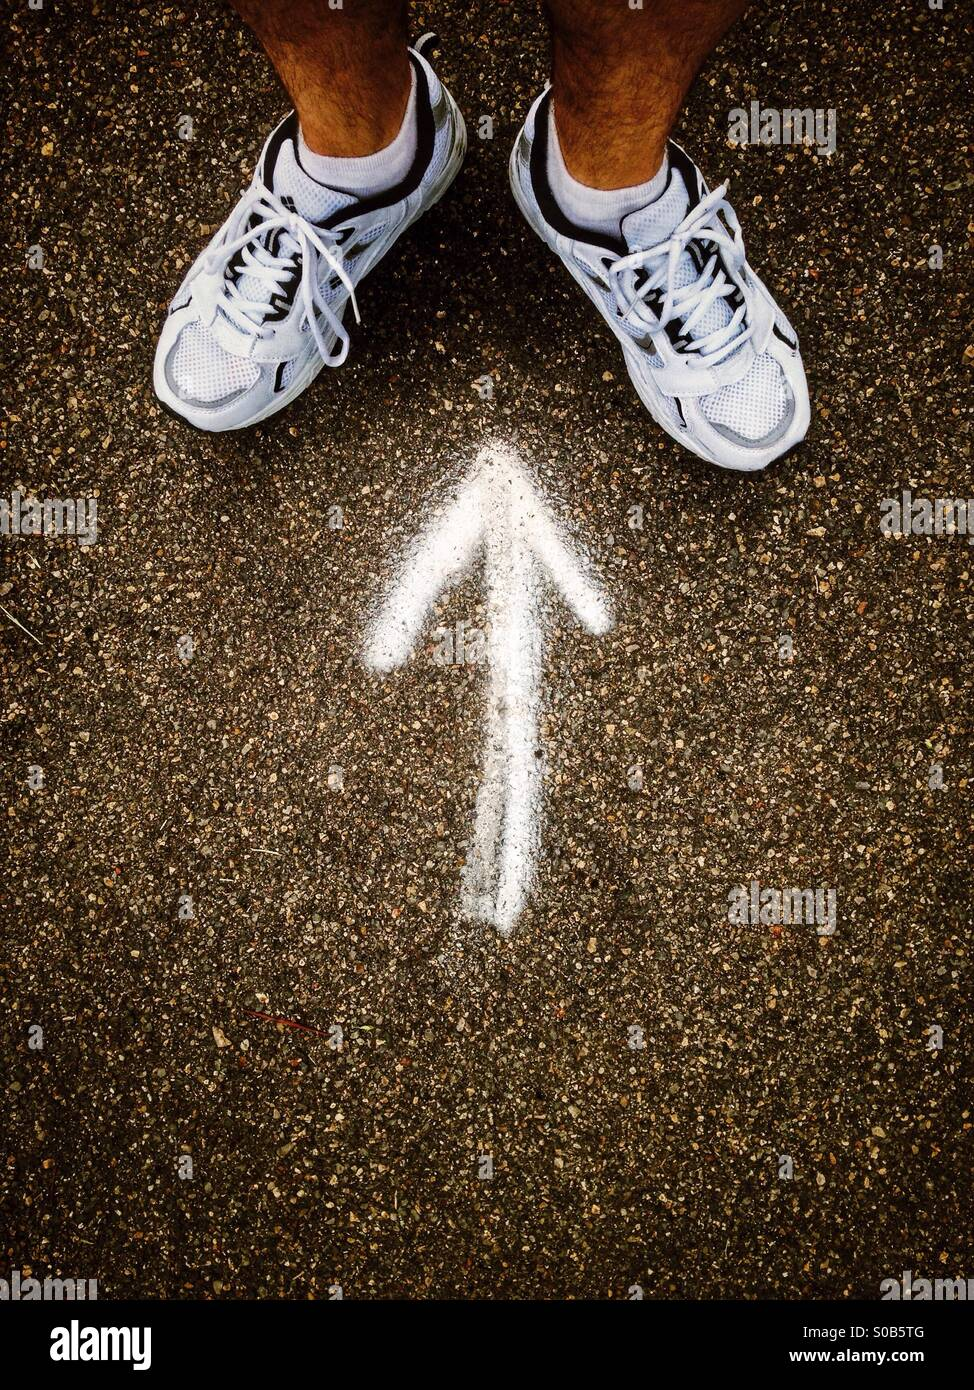 Arrow pointing to a man's feet. - Stock Image